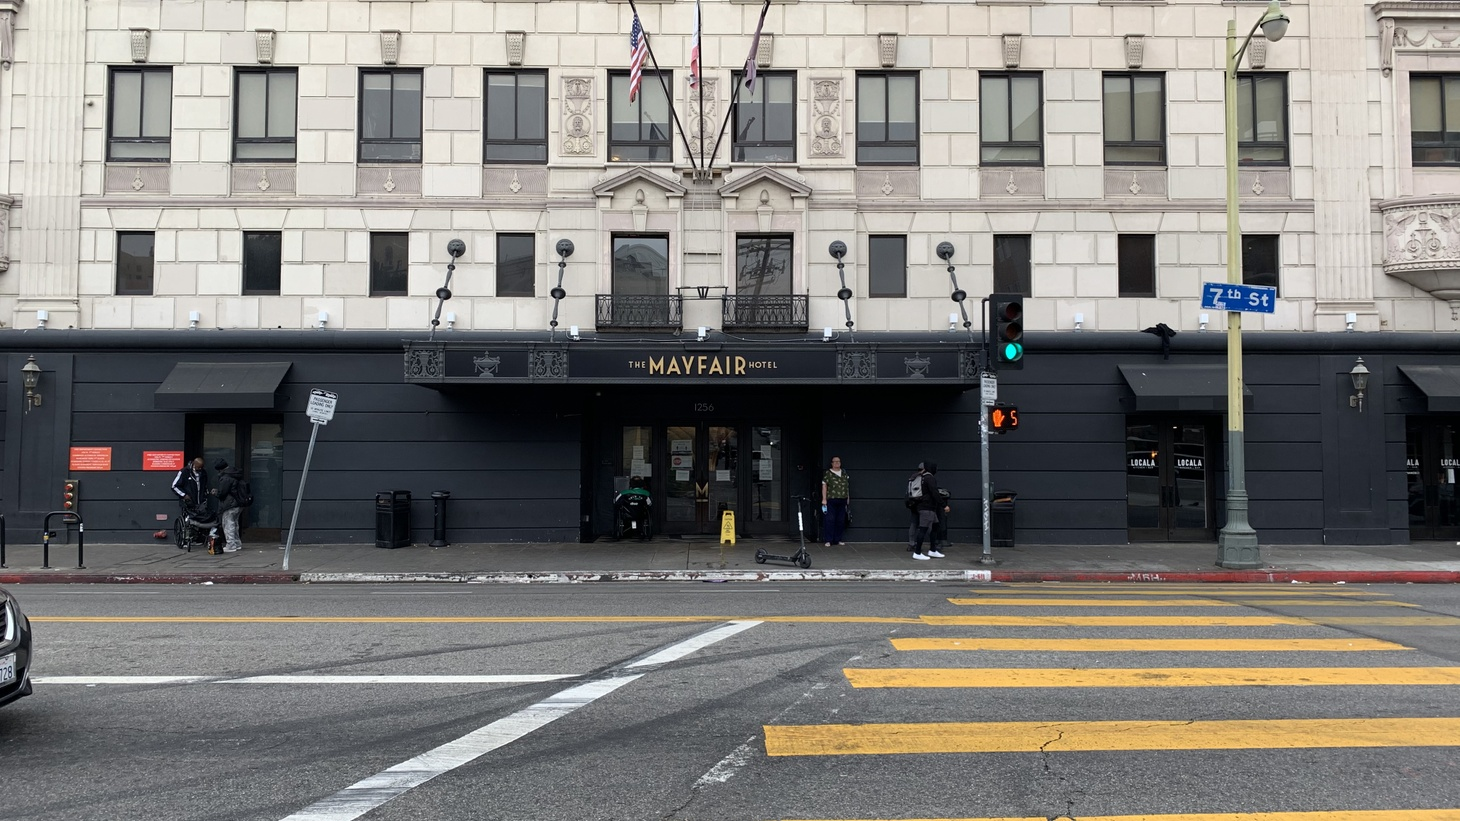 The Mayfair Hotel in Westlake is one of 16 hotels currently participating in Project Roomkey.